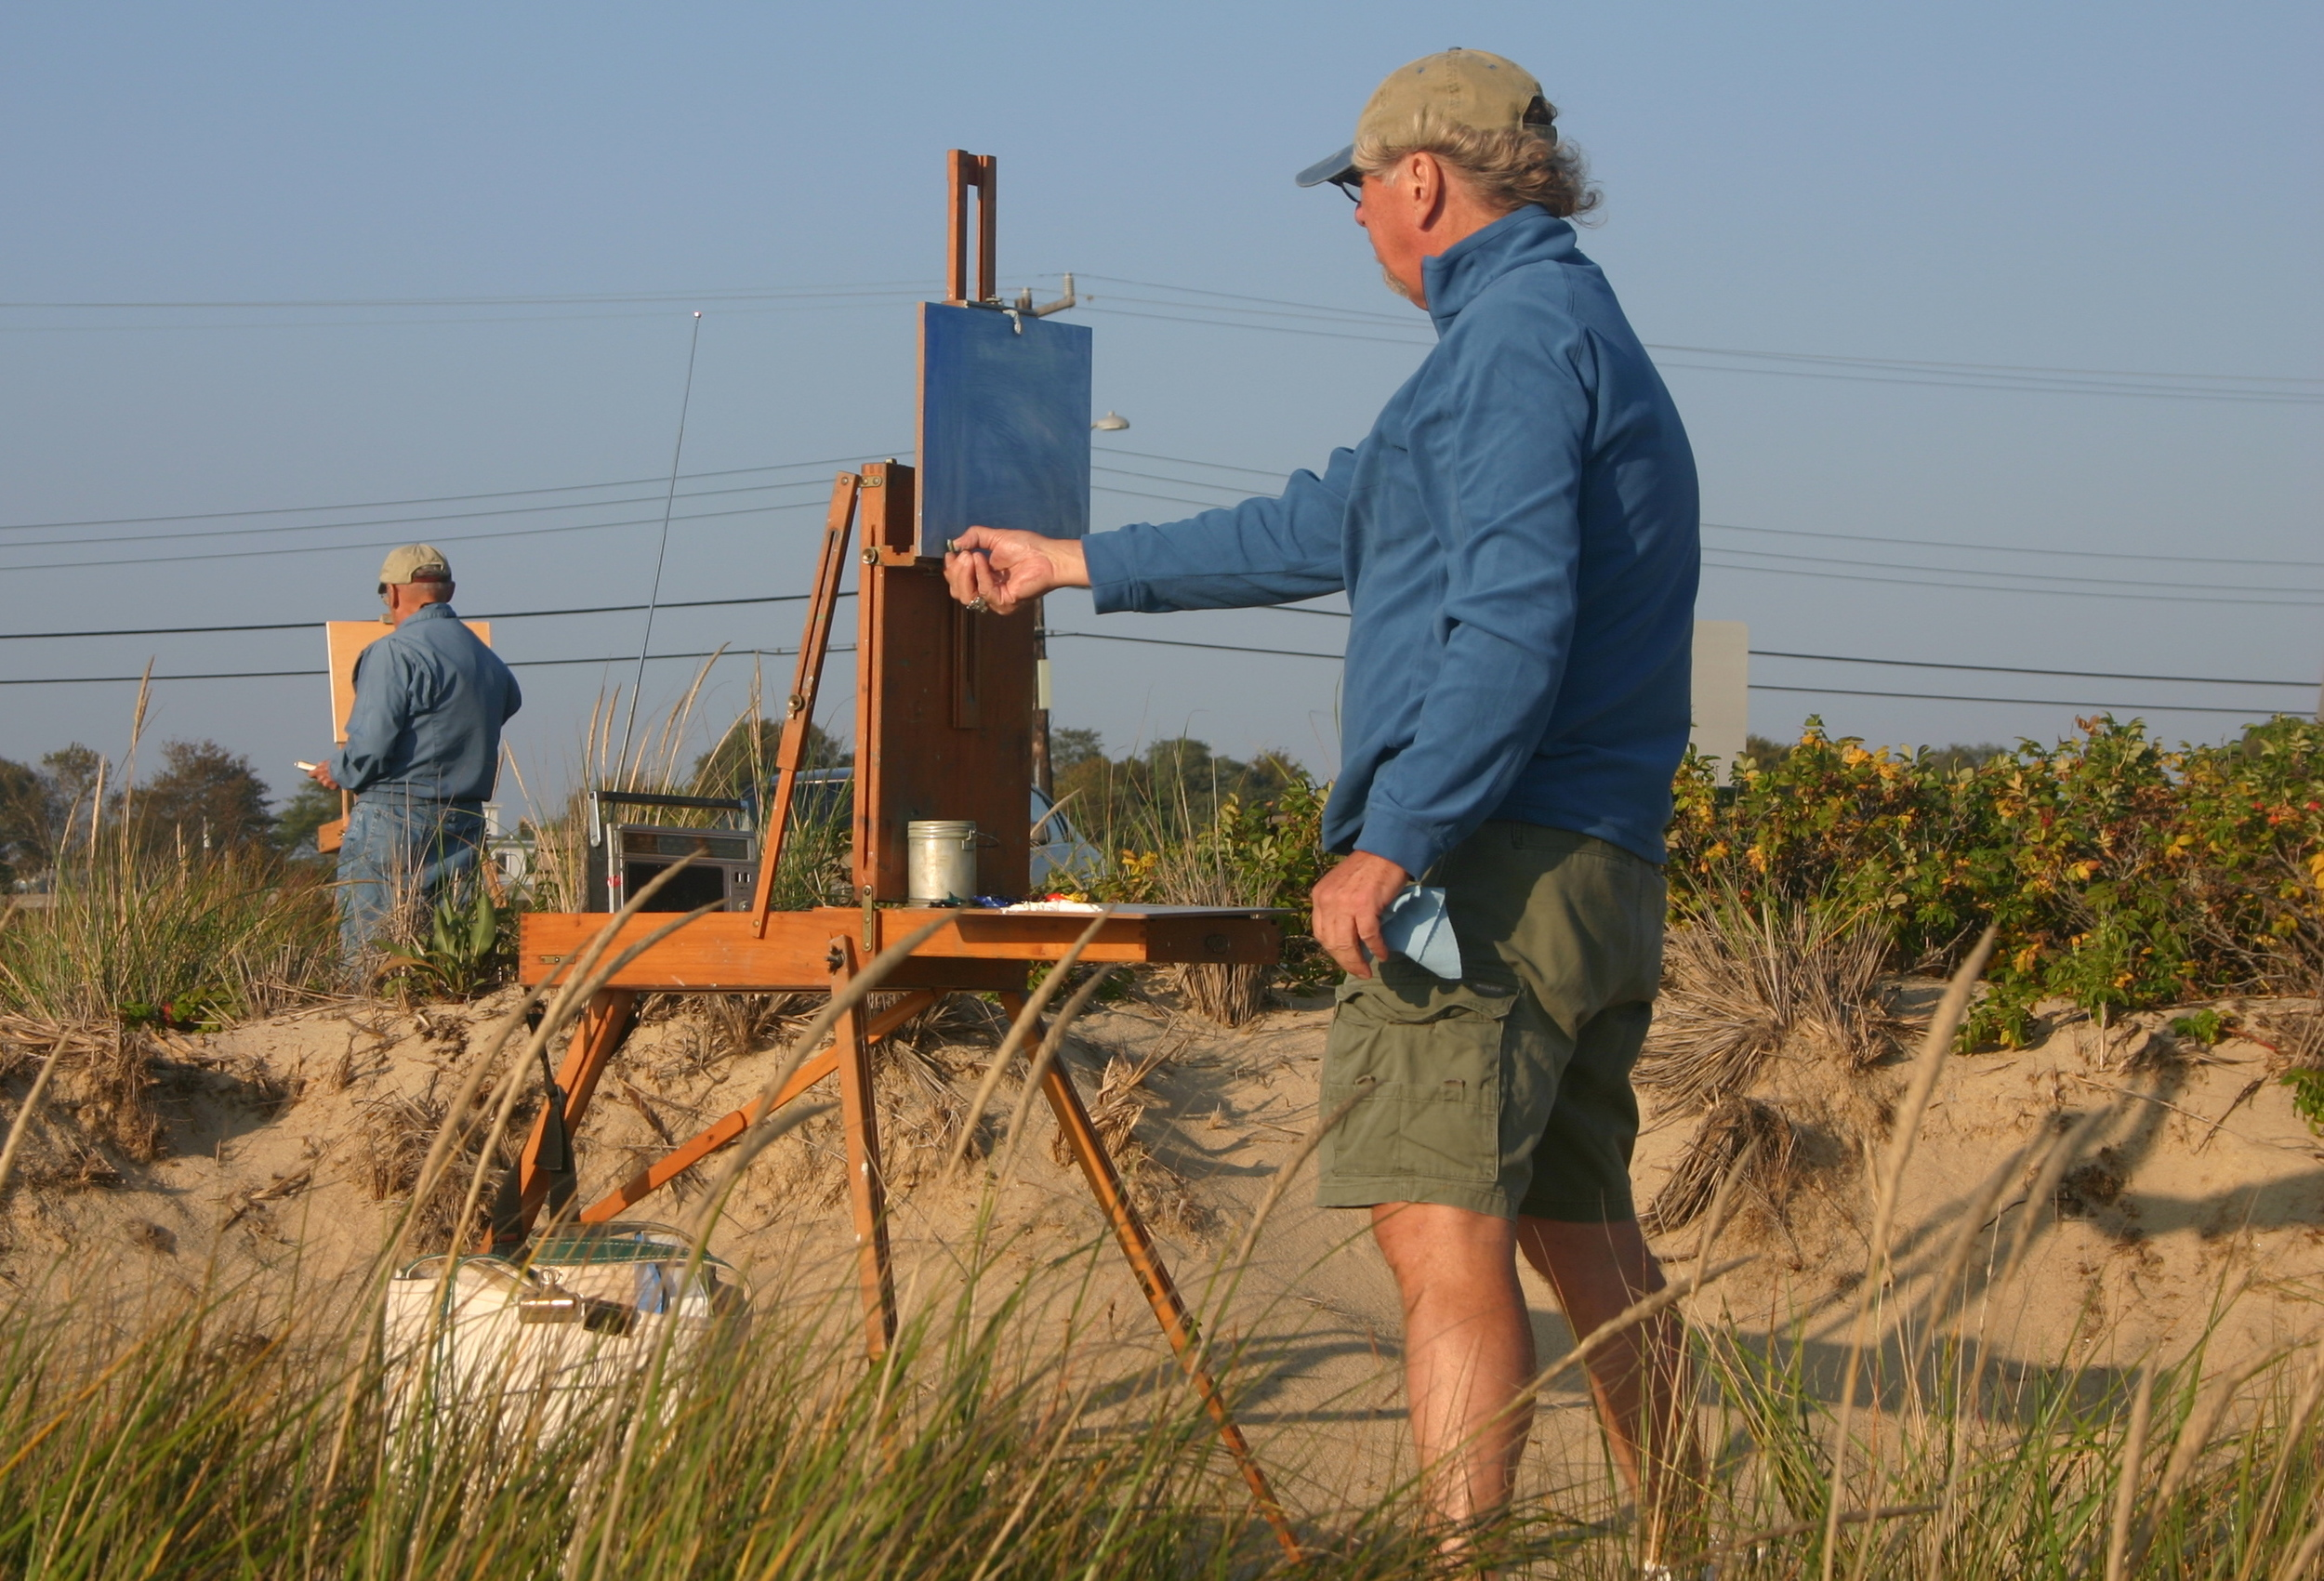 Earl Blust, pictured here on the left, painting on Cape Cod at Wellfleet with fellow Seven Lively Artist David R. Henry.